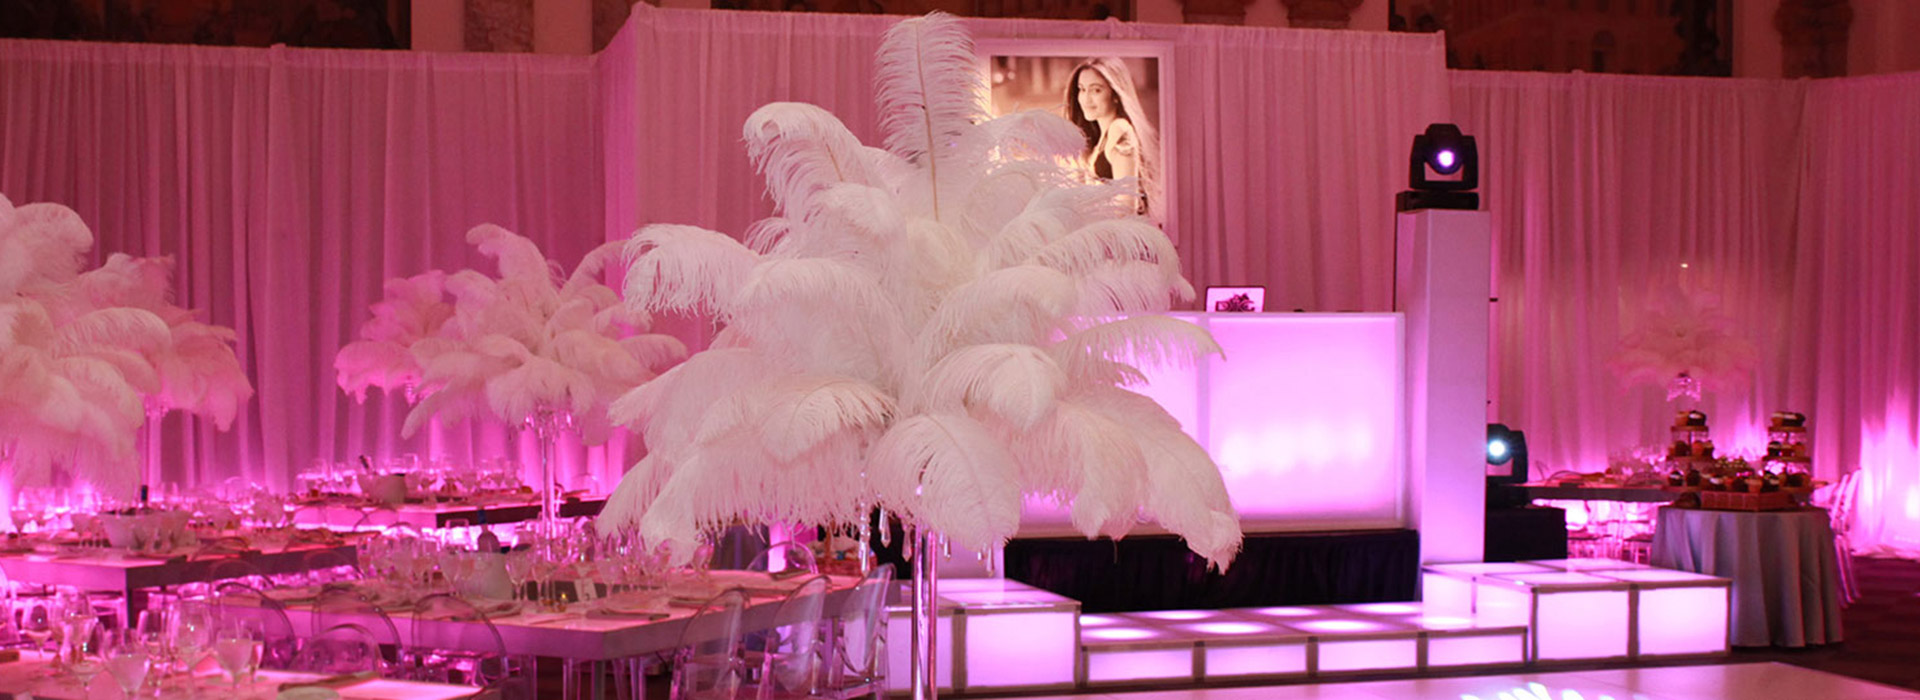 Bar & Bat Mitzvahs at 48 Wall Street